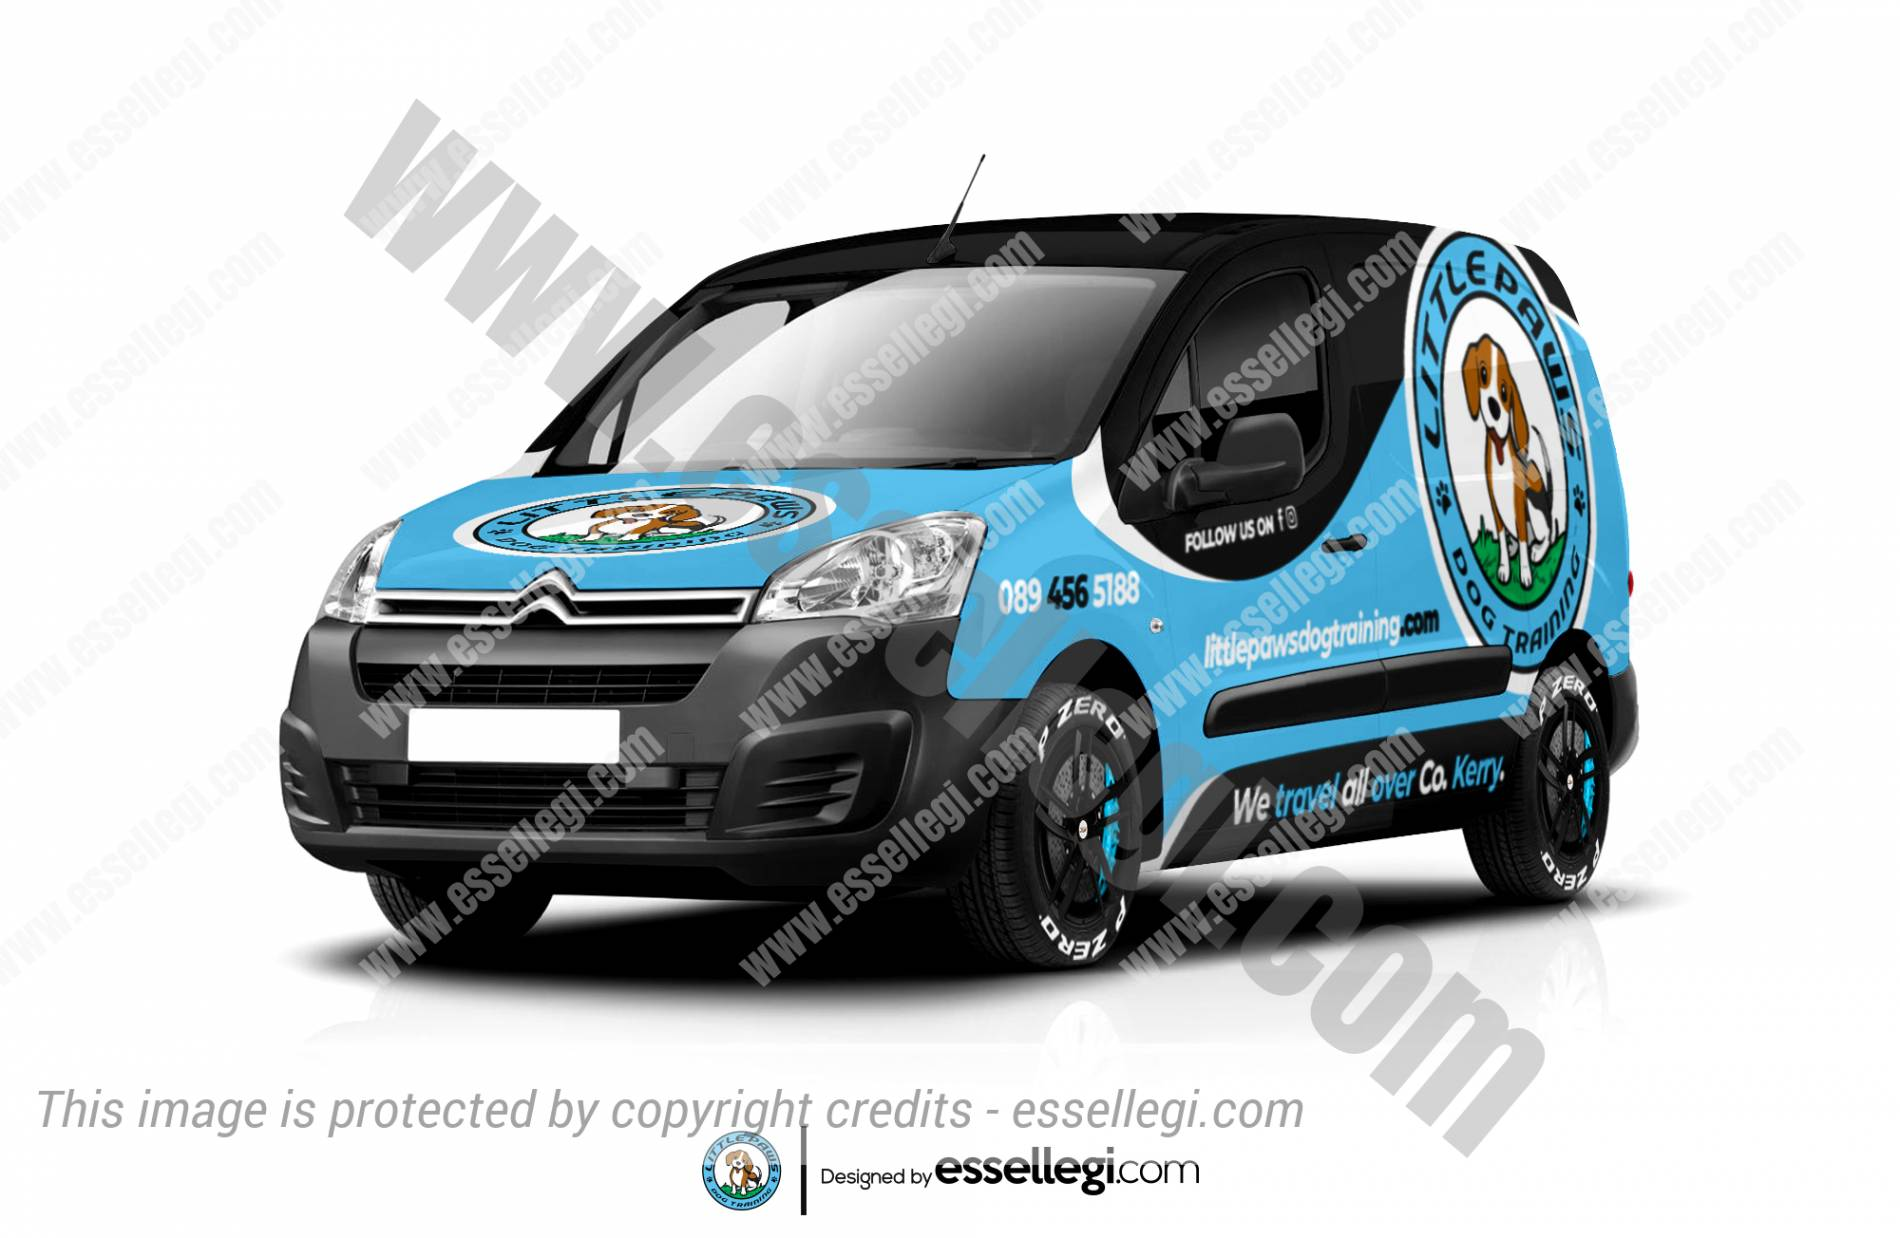 Citroen Berlingo Wrap Design. Citroen Berlingo | Van Wrap Design by Essellegi. Van Signs, Van Signage, Van Wrapping, Van Signwriting, Van Wrap Designer, Signs for Van, Van Logo, Van Graphic by Essellegi.